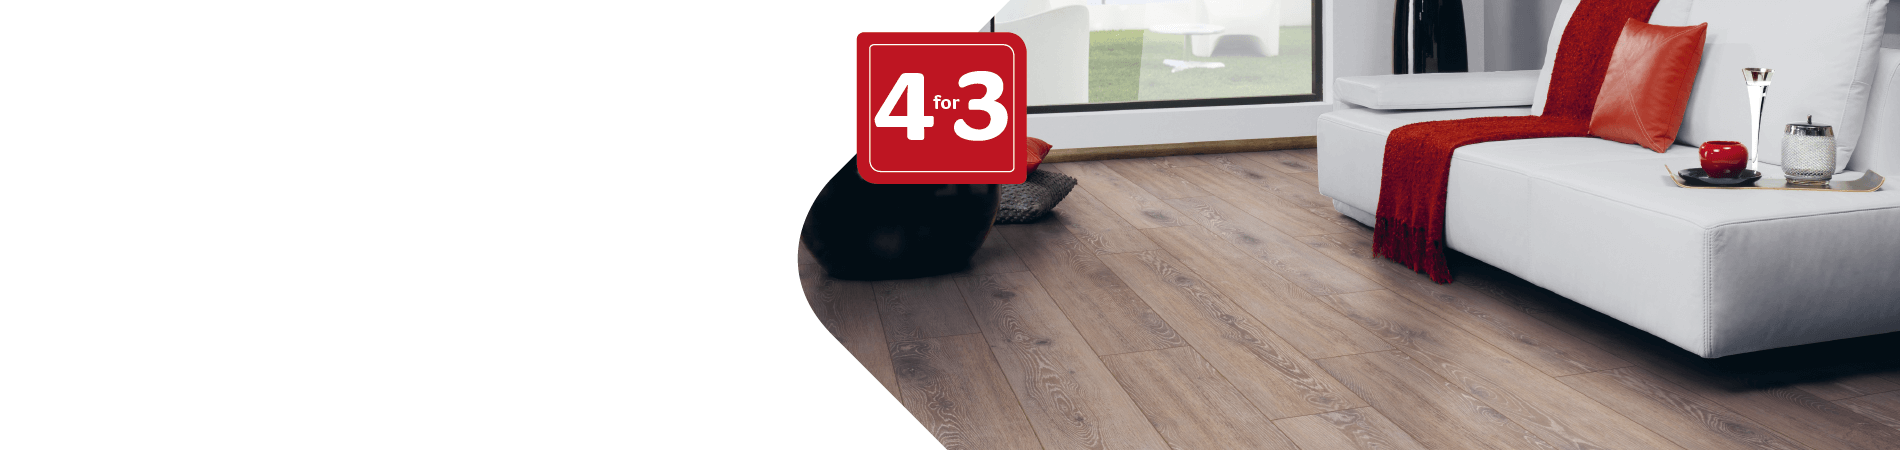 4-for-3-on-all-Laminate-Flooring